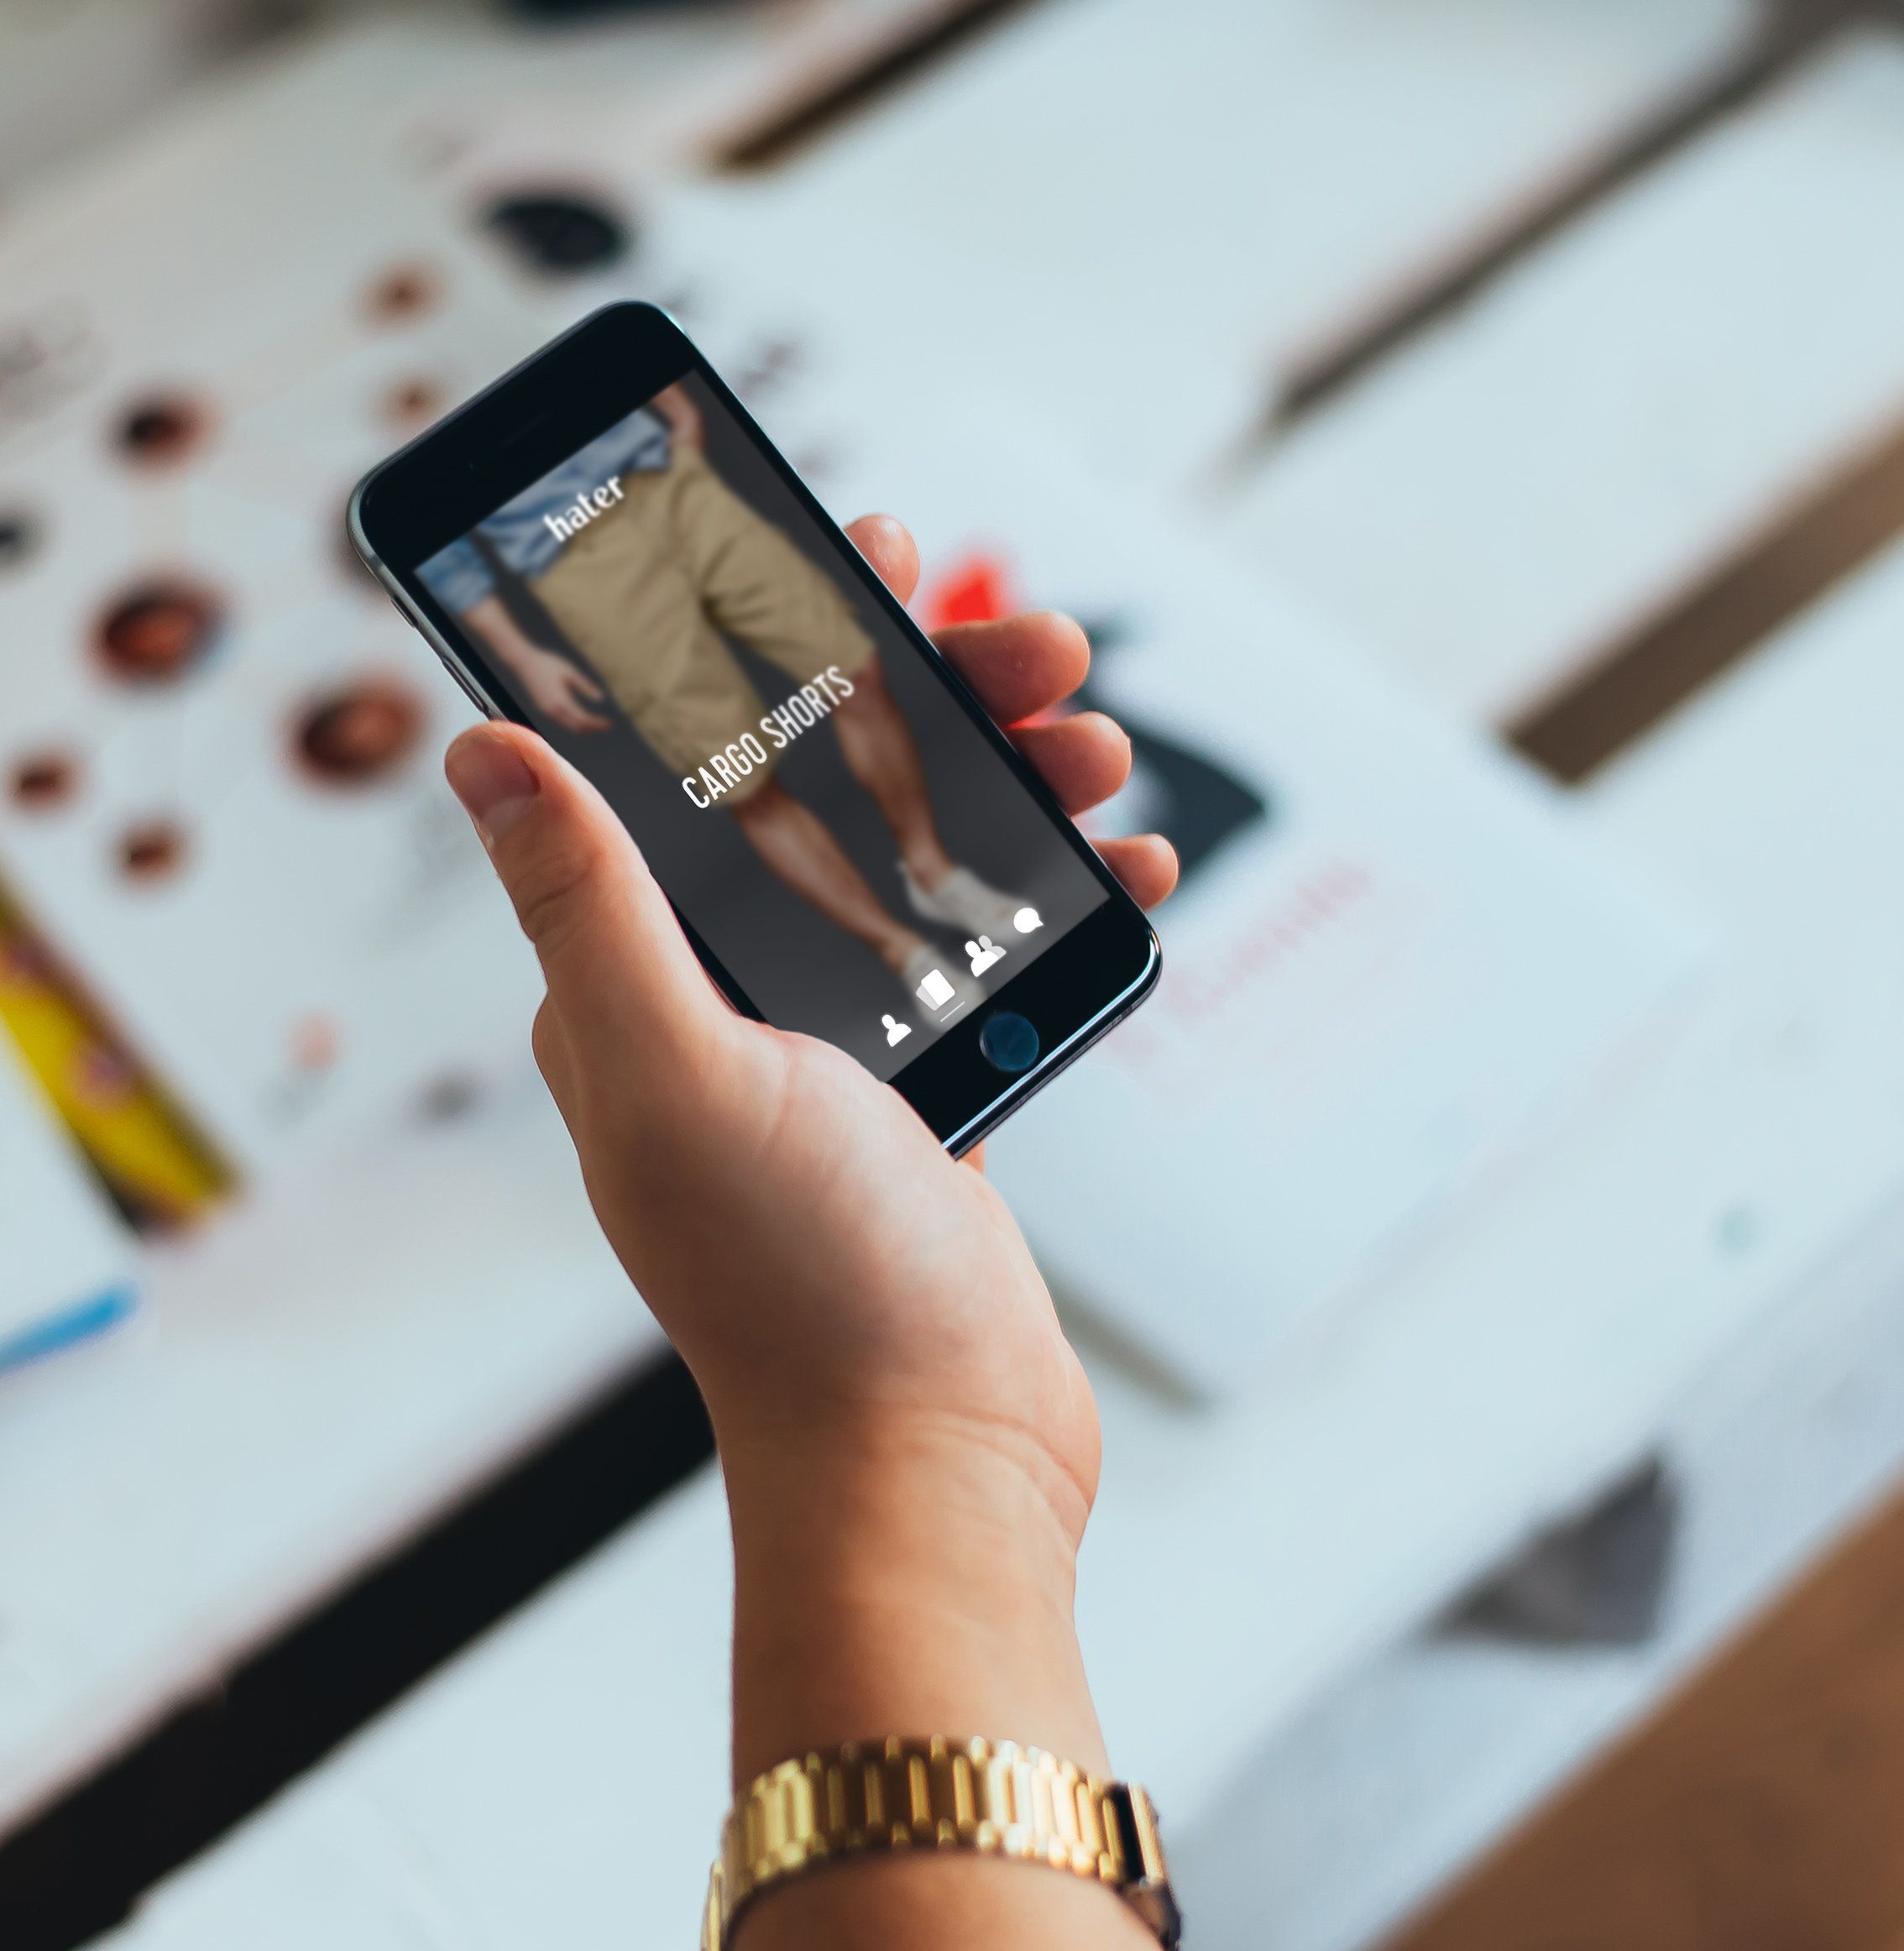 Dating App 'Hater' Matches You Based On The Things You Dislike Most In The